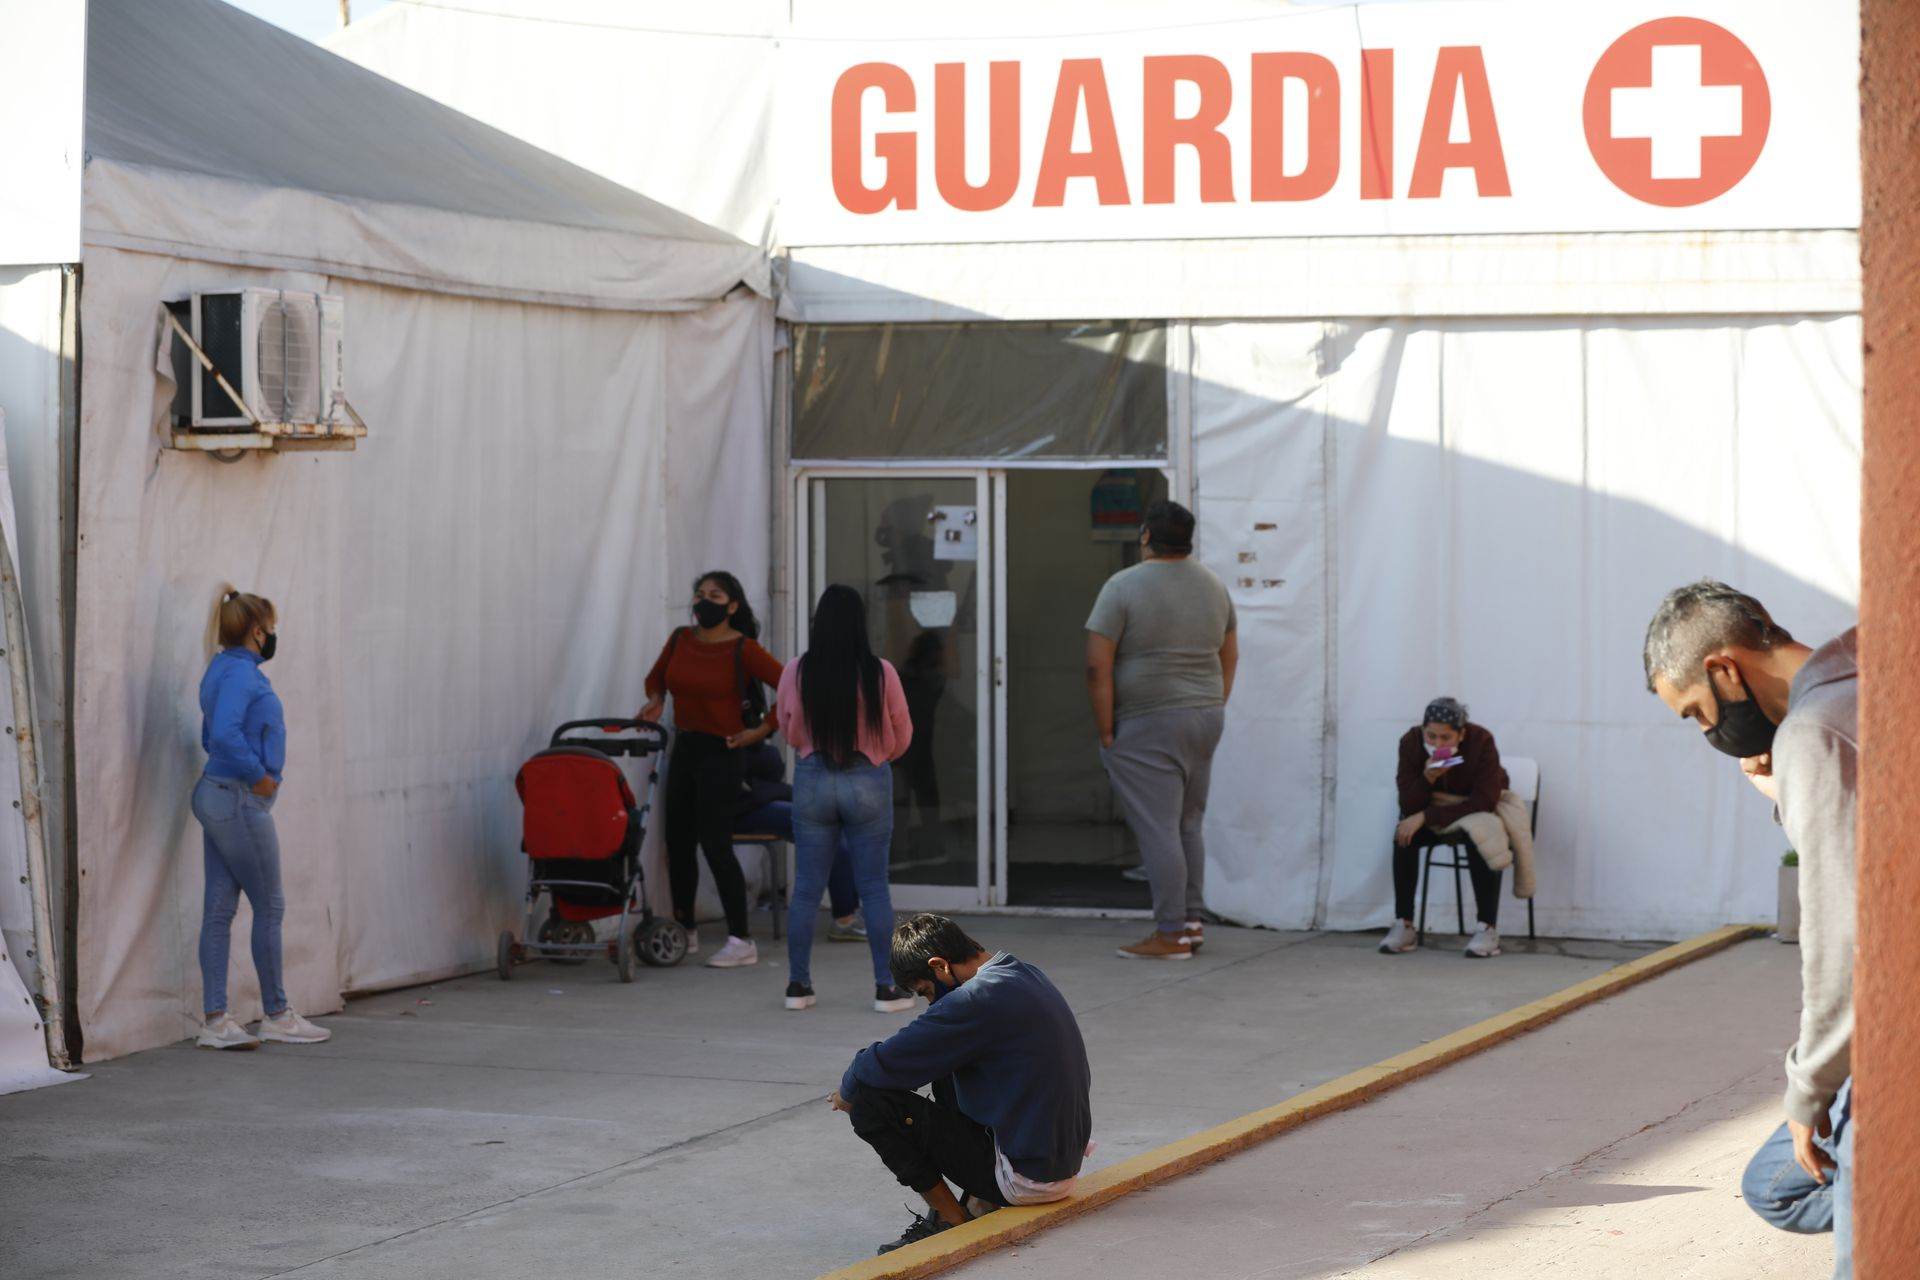 They wait at the Guardia Domingo Anggio Municipal Hospital in the town of José C Paz